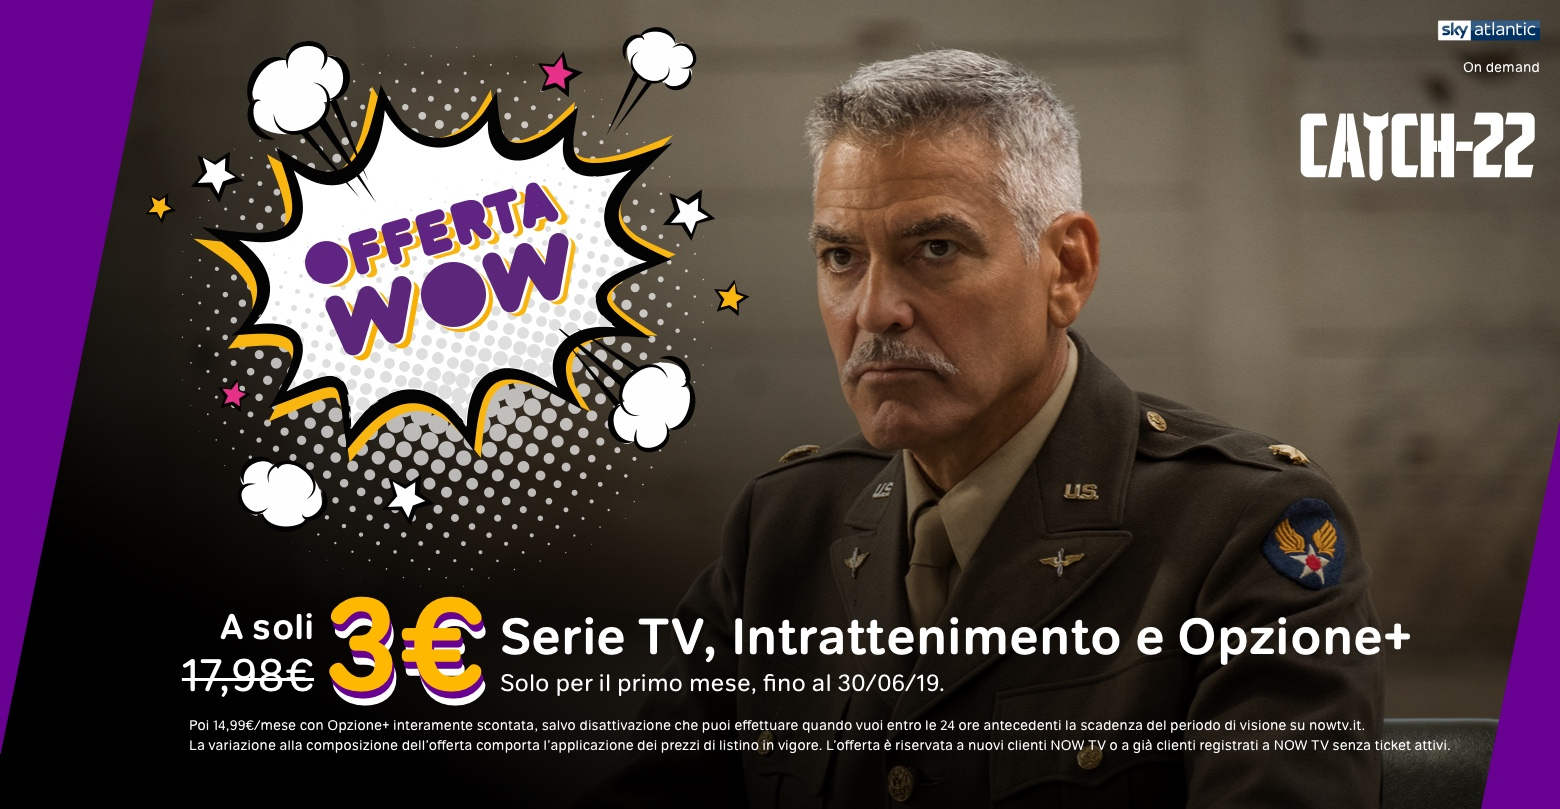 NOW TV lancia offerta WOW con un super sconto per il primo mese